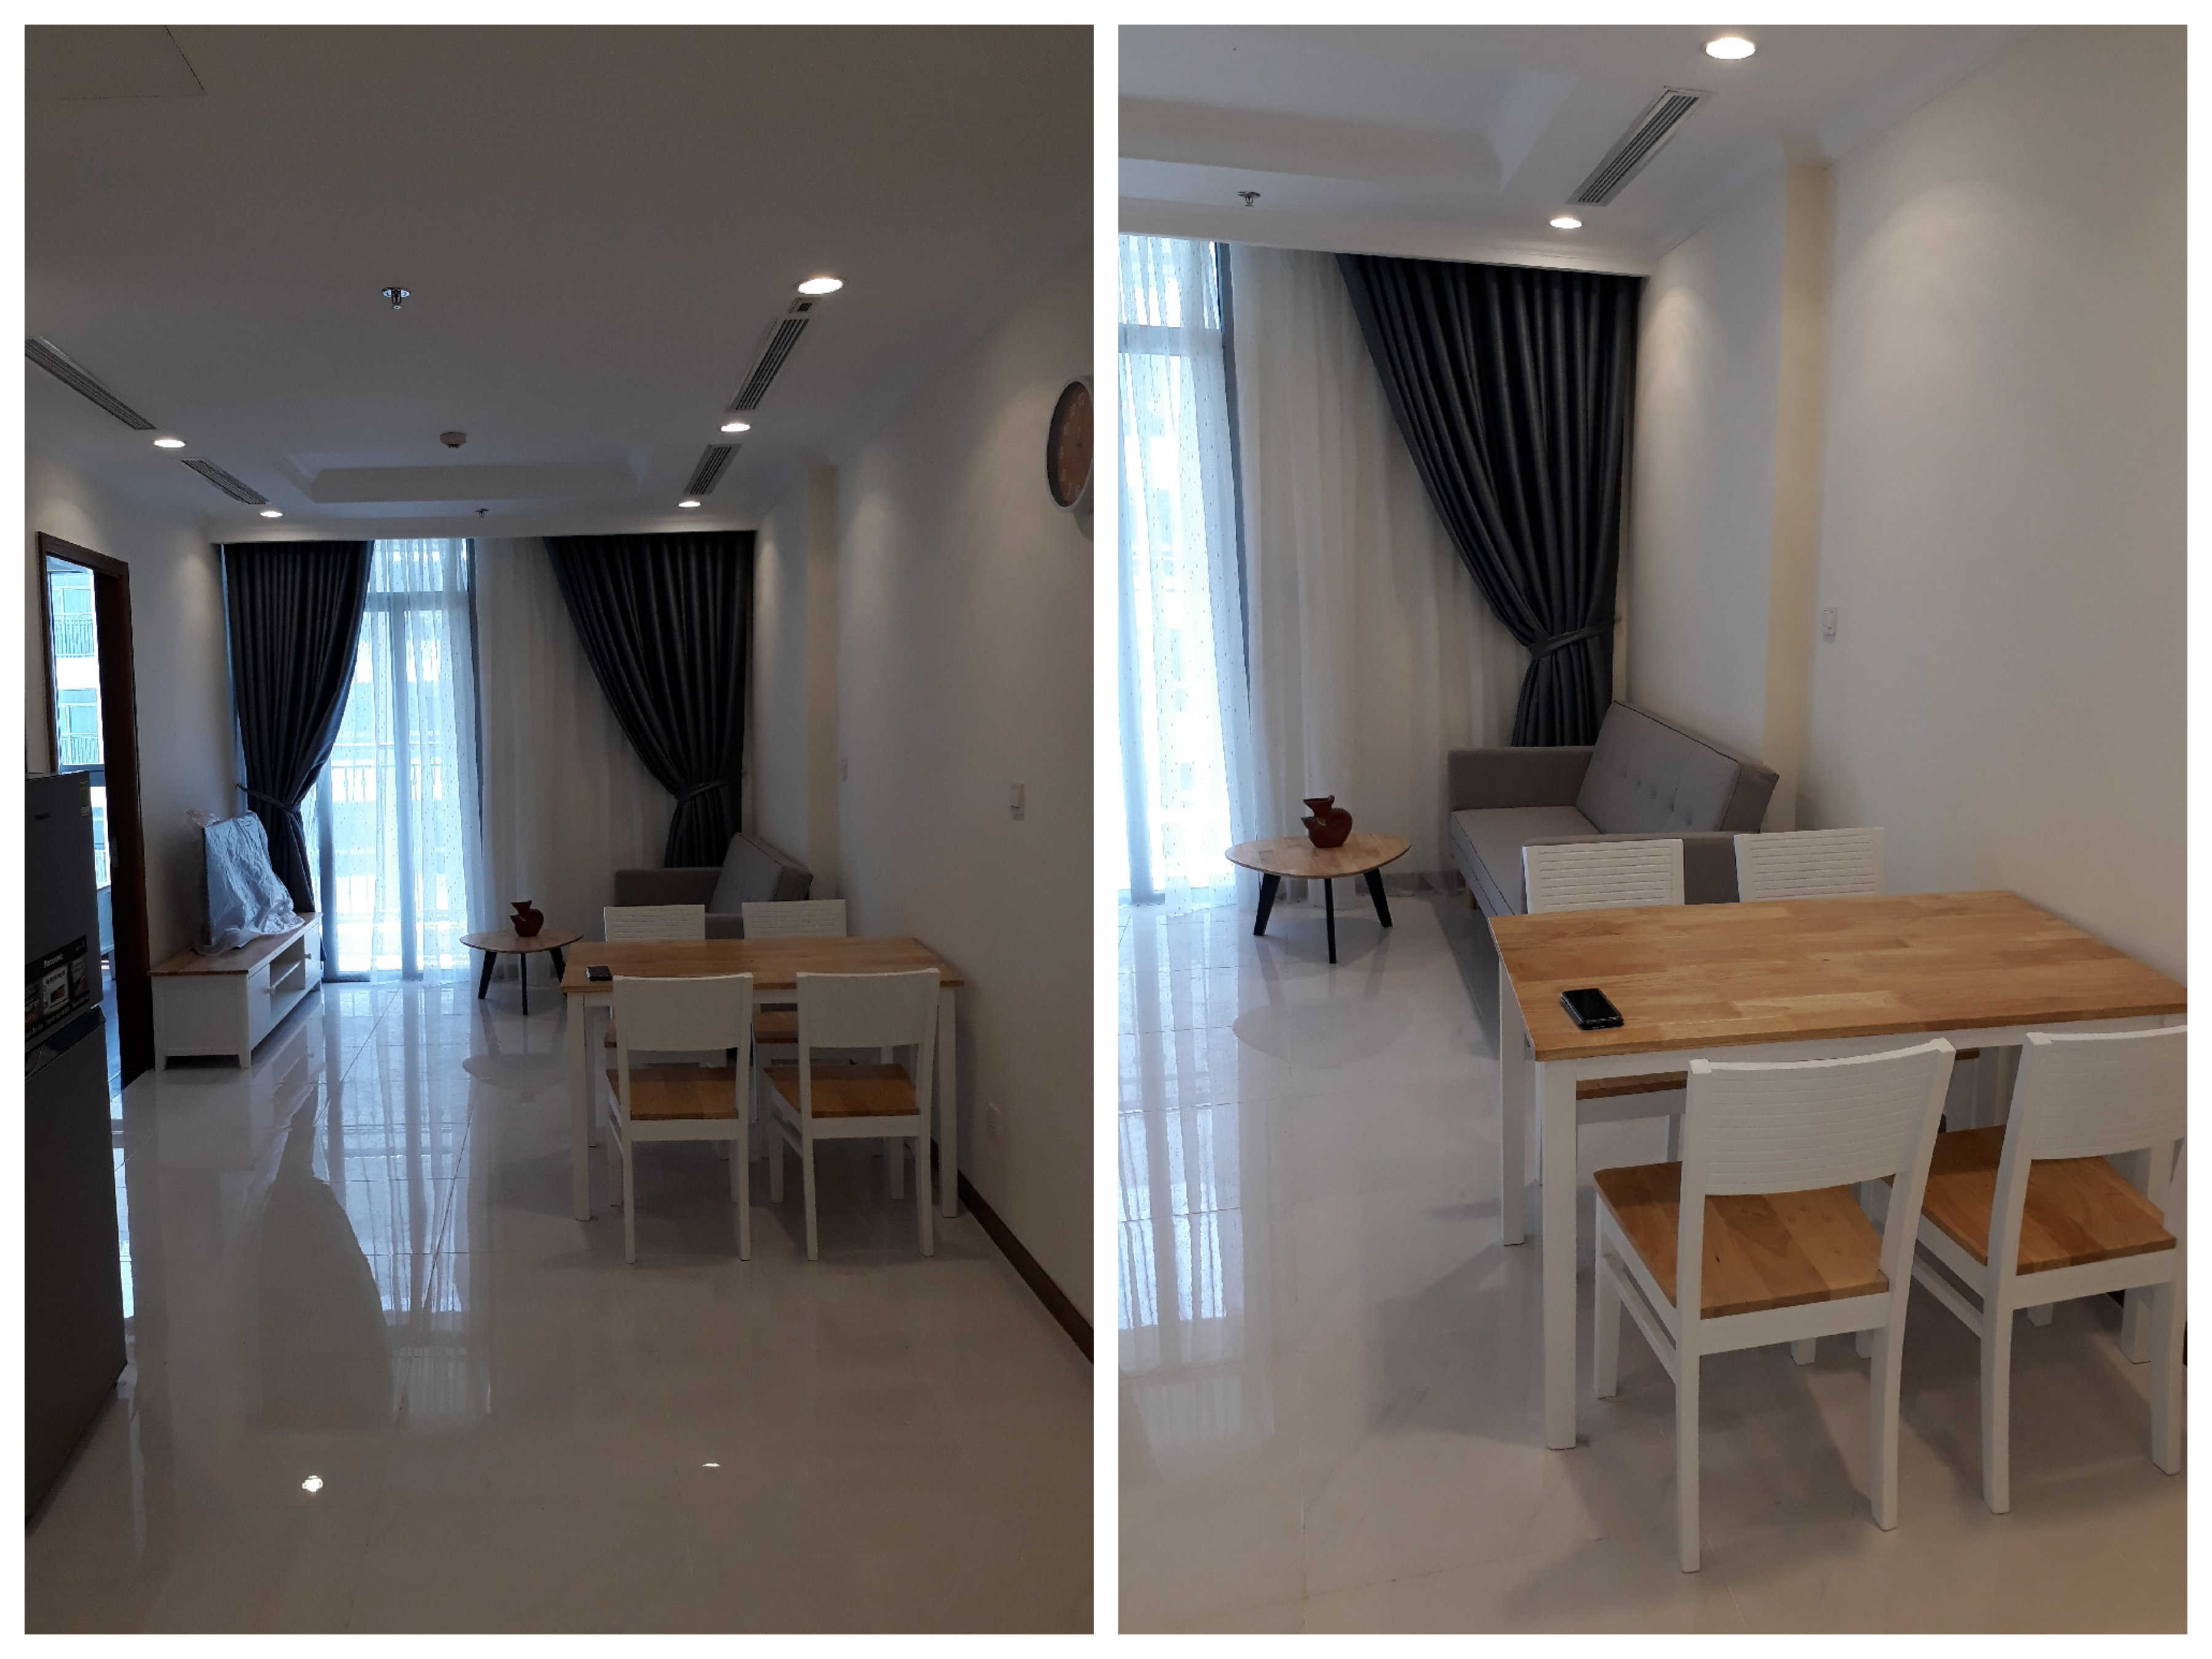 apartment for rent in Vinhomes Central Park Binh Thanh  District HCM  BT105L2461 (4)